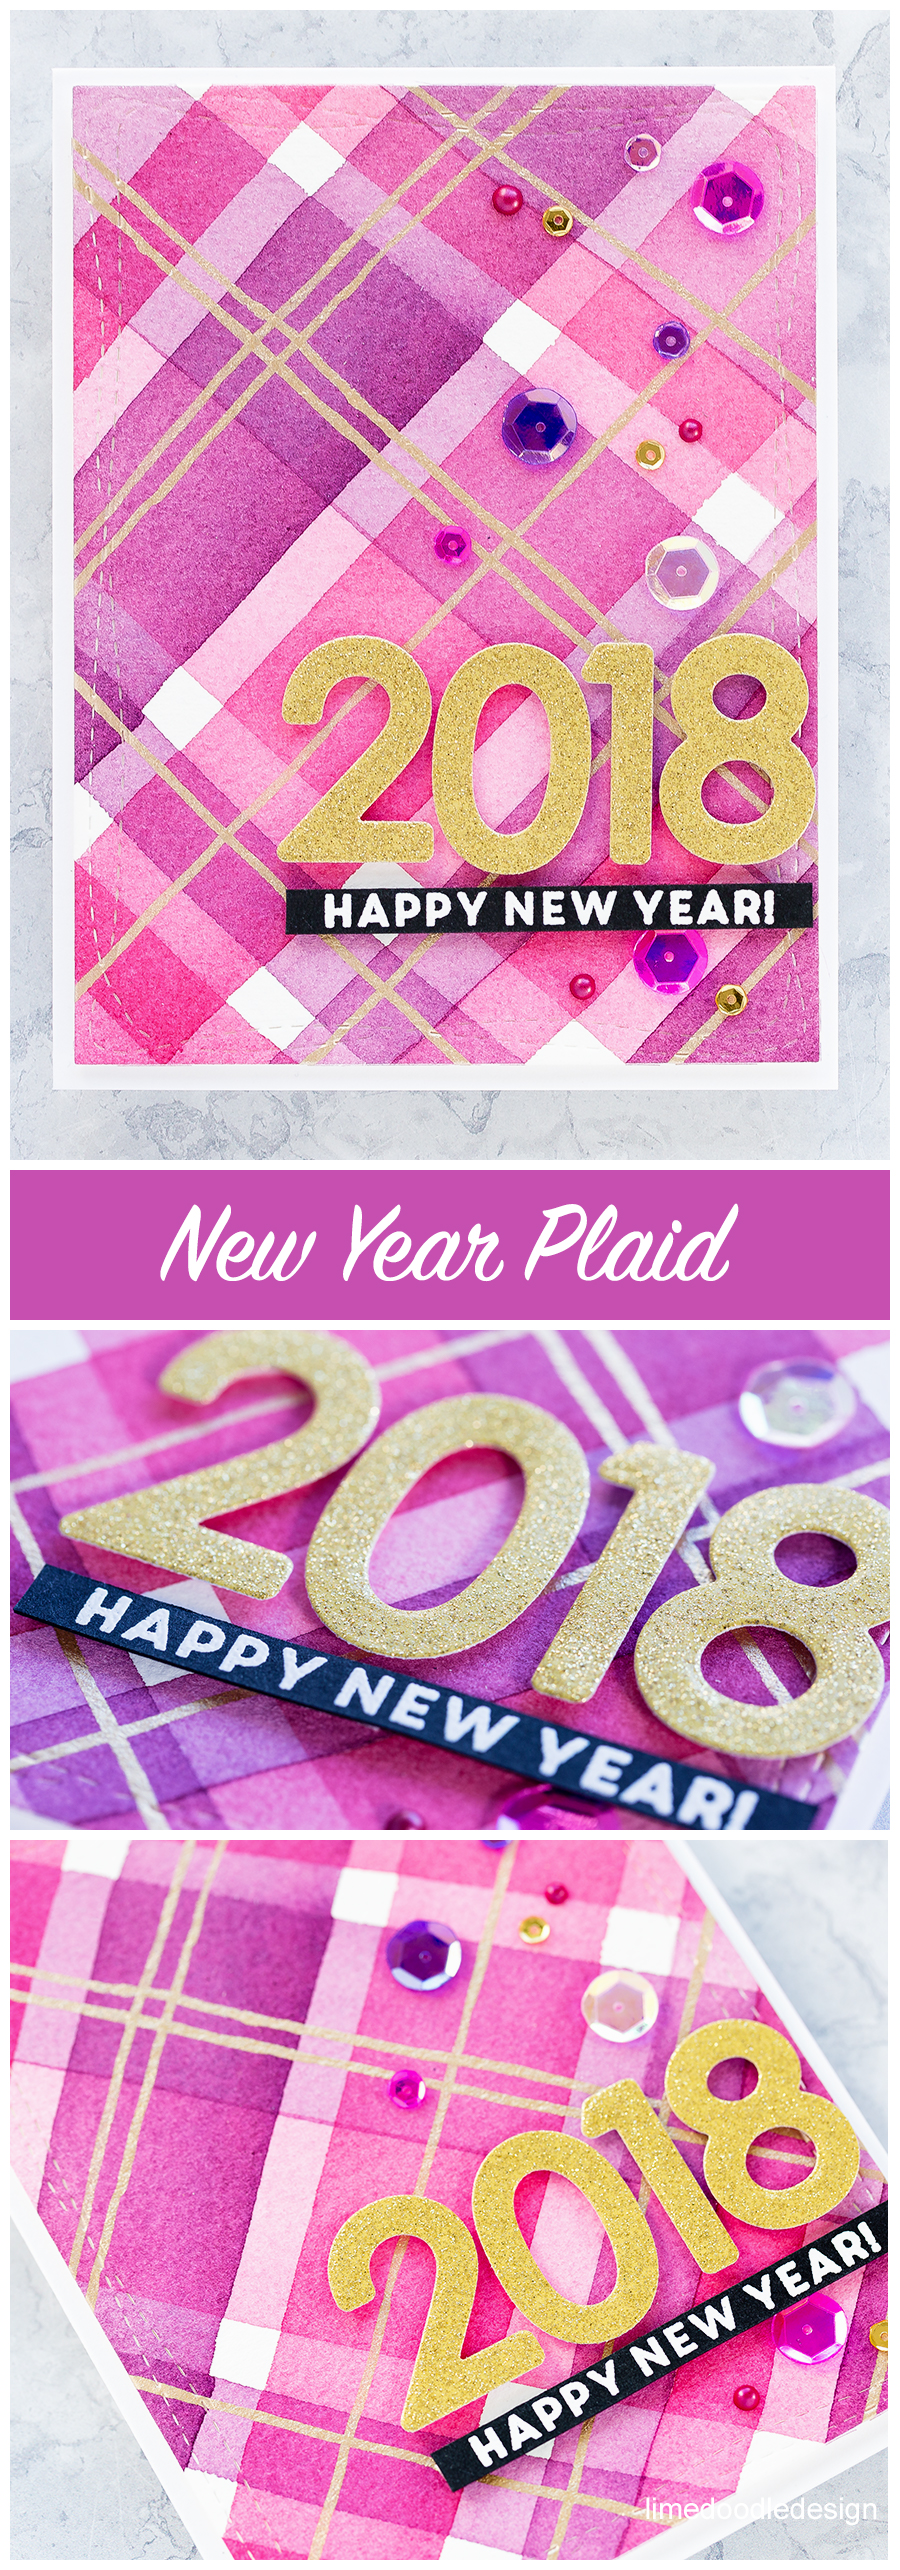 New Year watercolour plaid handmade card for World Cardmaking Day from Simon Says Stamp. Find out more here: https://limedoodledesign.com/2017/10/watercoloured-plaid-for-world-card-making-day/